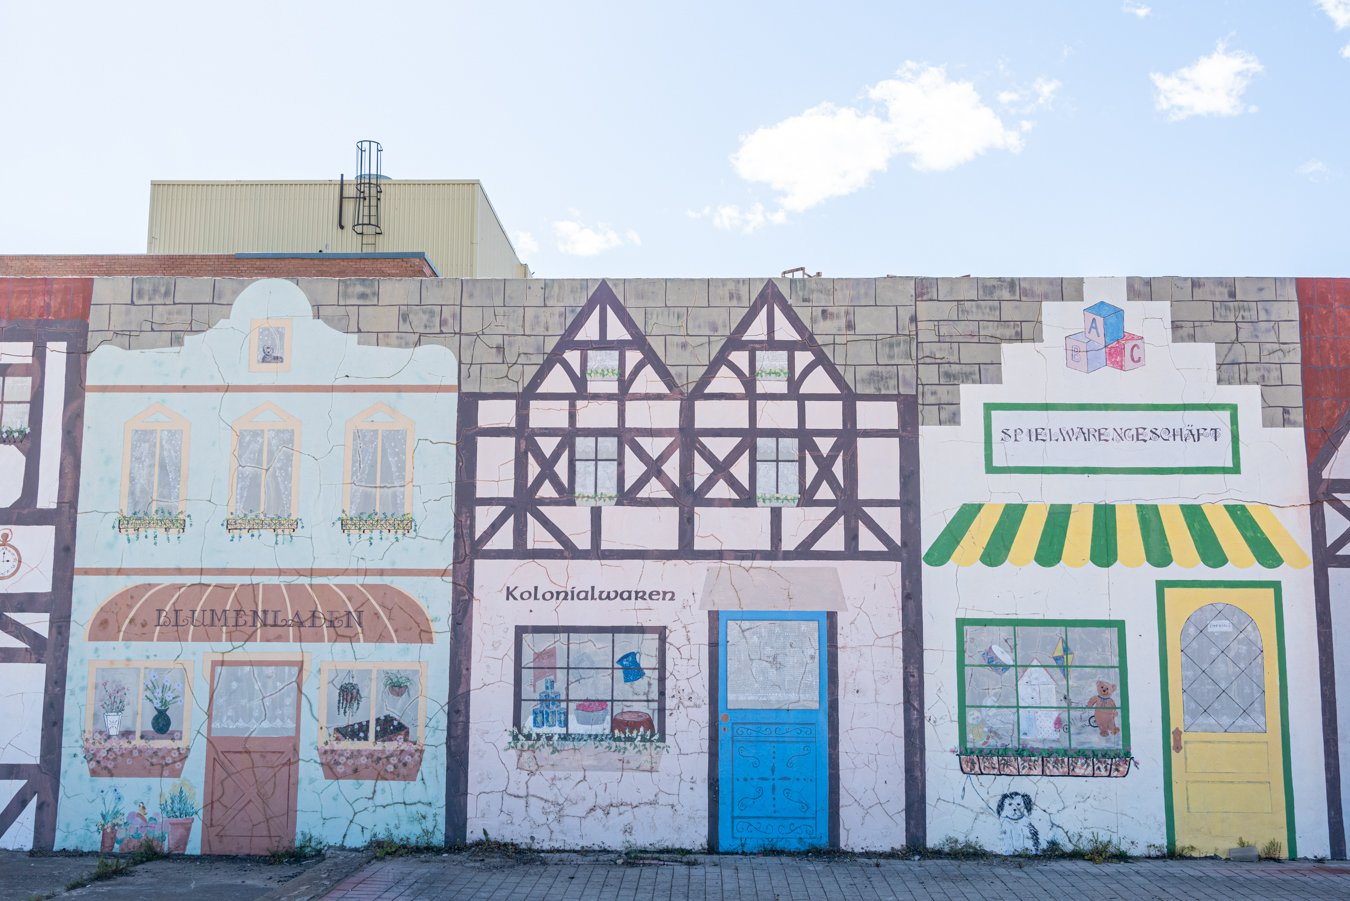 mural displaying painted german-style buildings, one of the best things to do in muenster texas is snap photos here